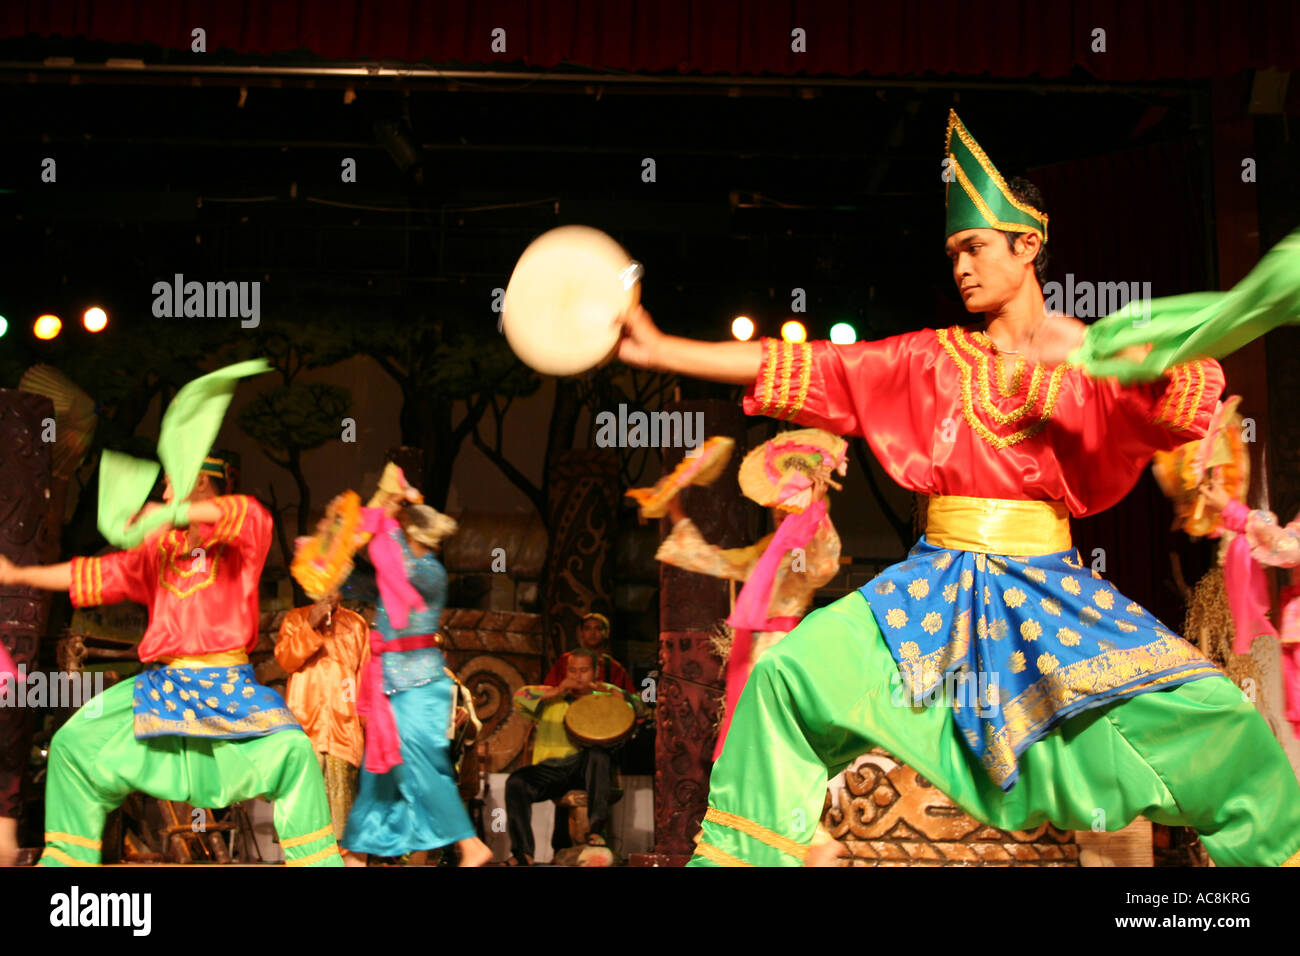 Traditional Malay Dance Performed At Cultural Village In Kuching